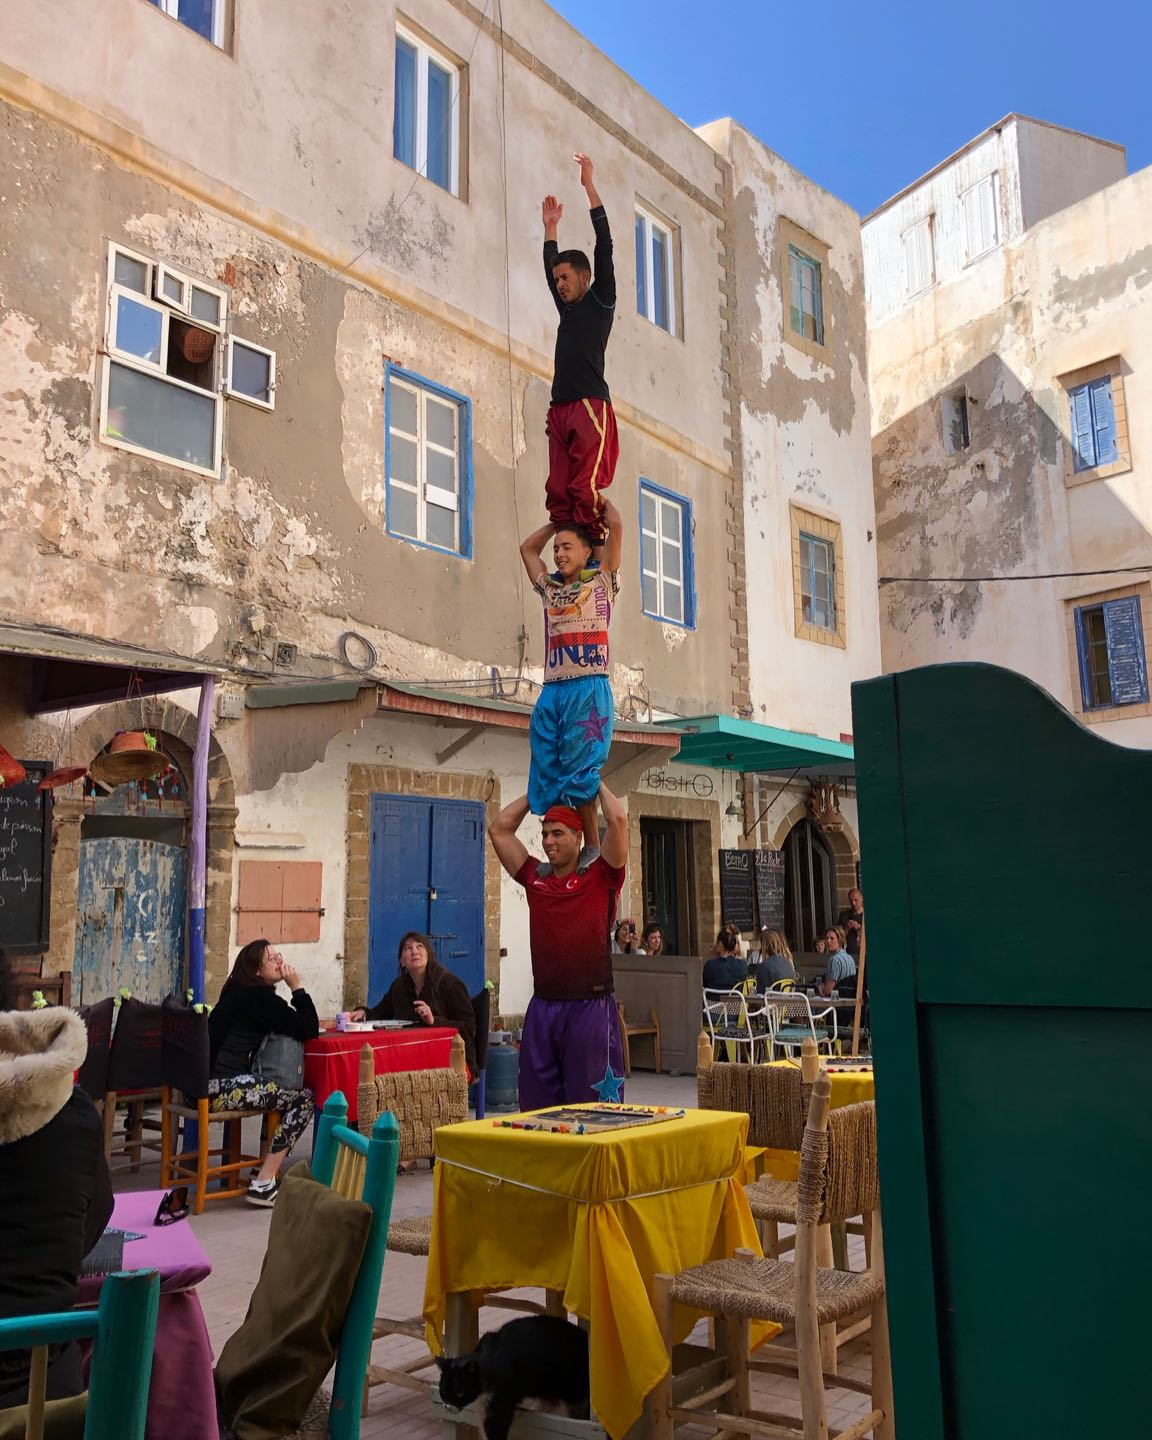 Streets performers outside Taraa Café, one of the best areas for lunch in Essaouira.